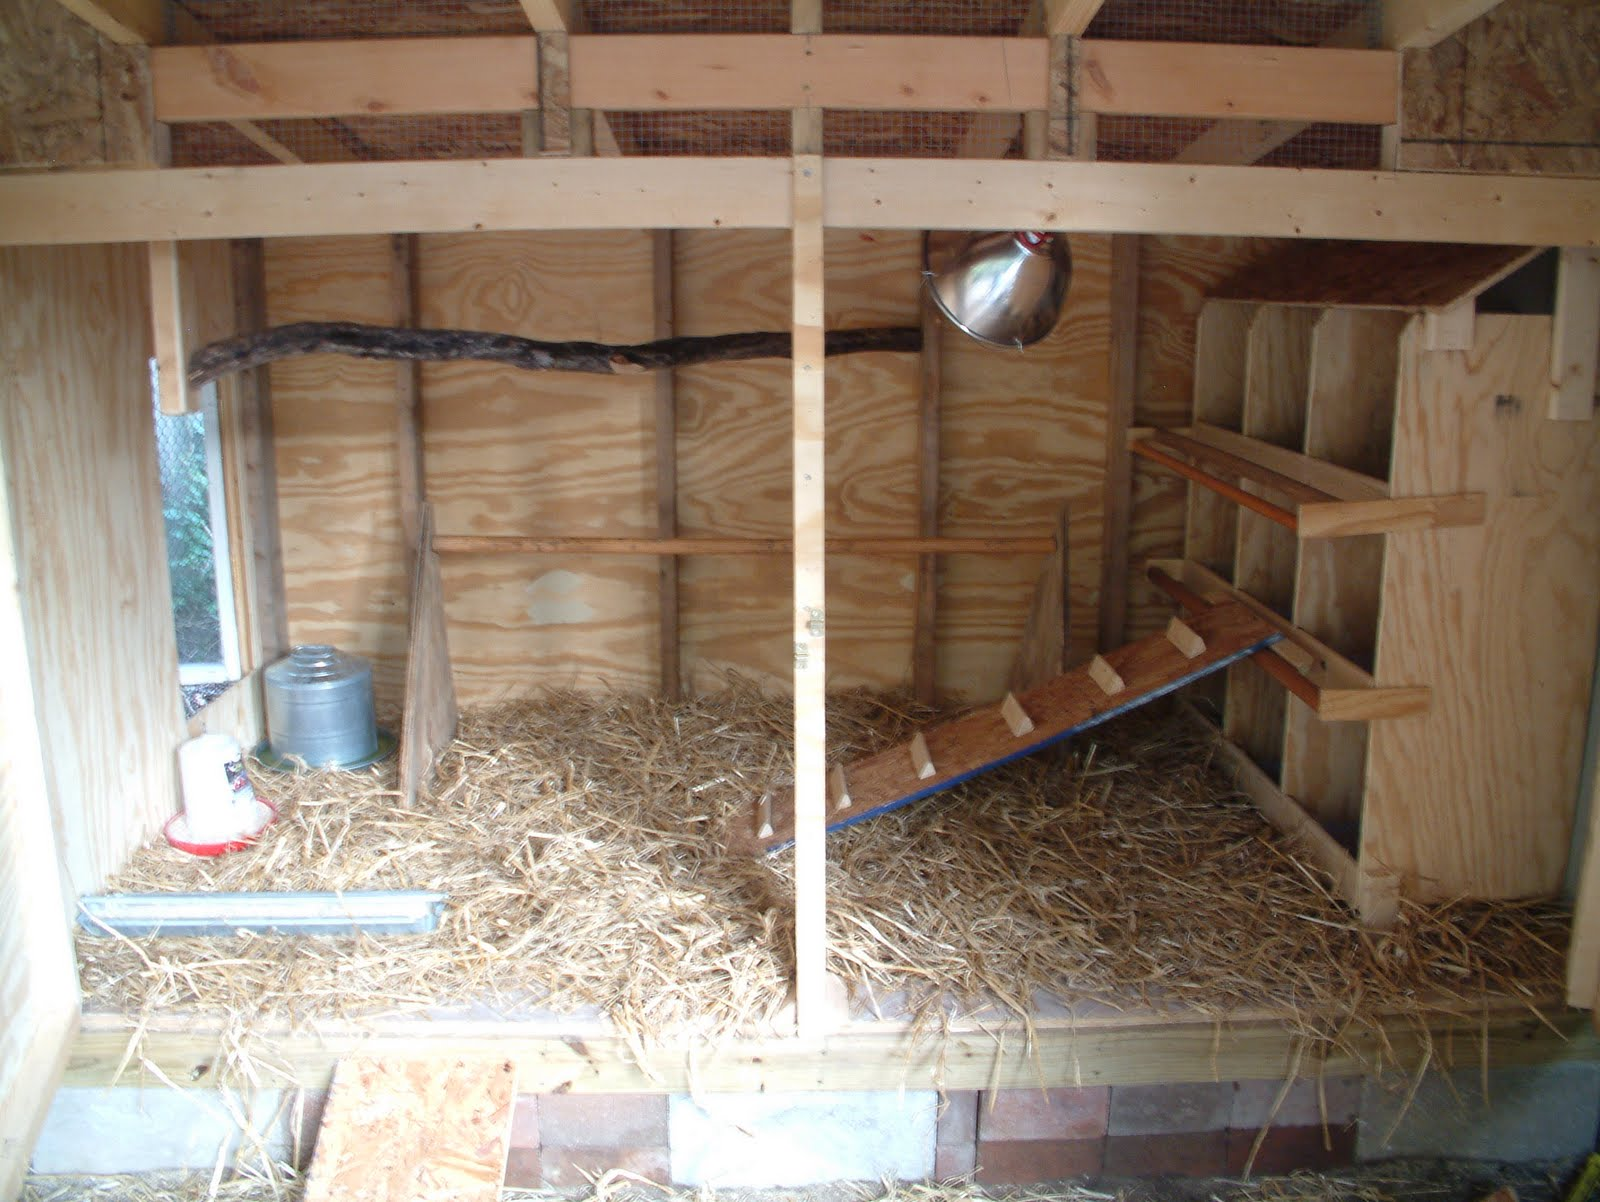 Chicken coop inside layout - photo#46